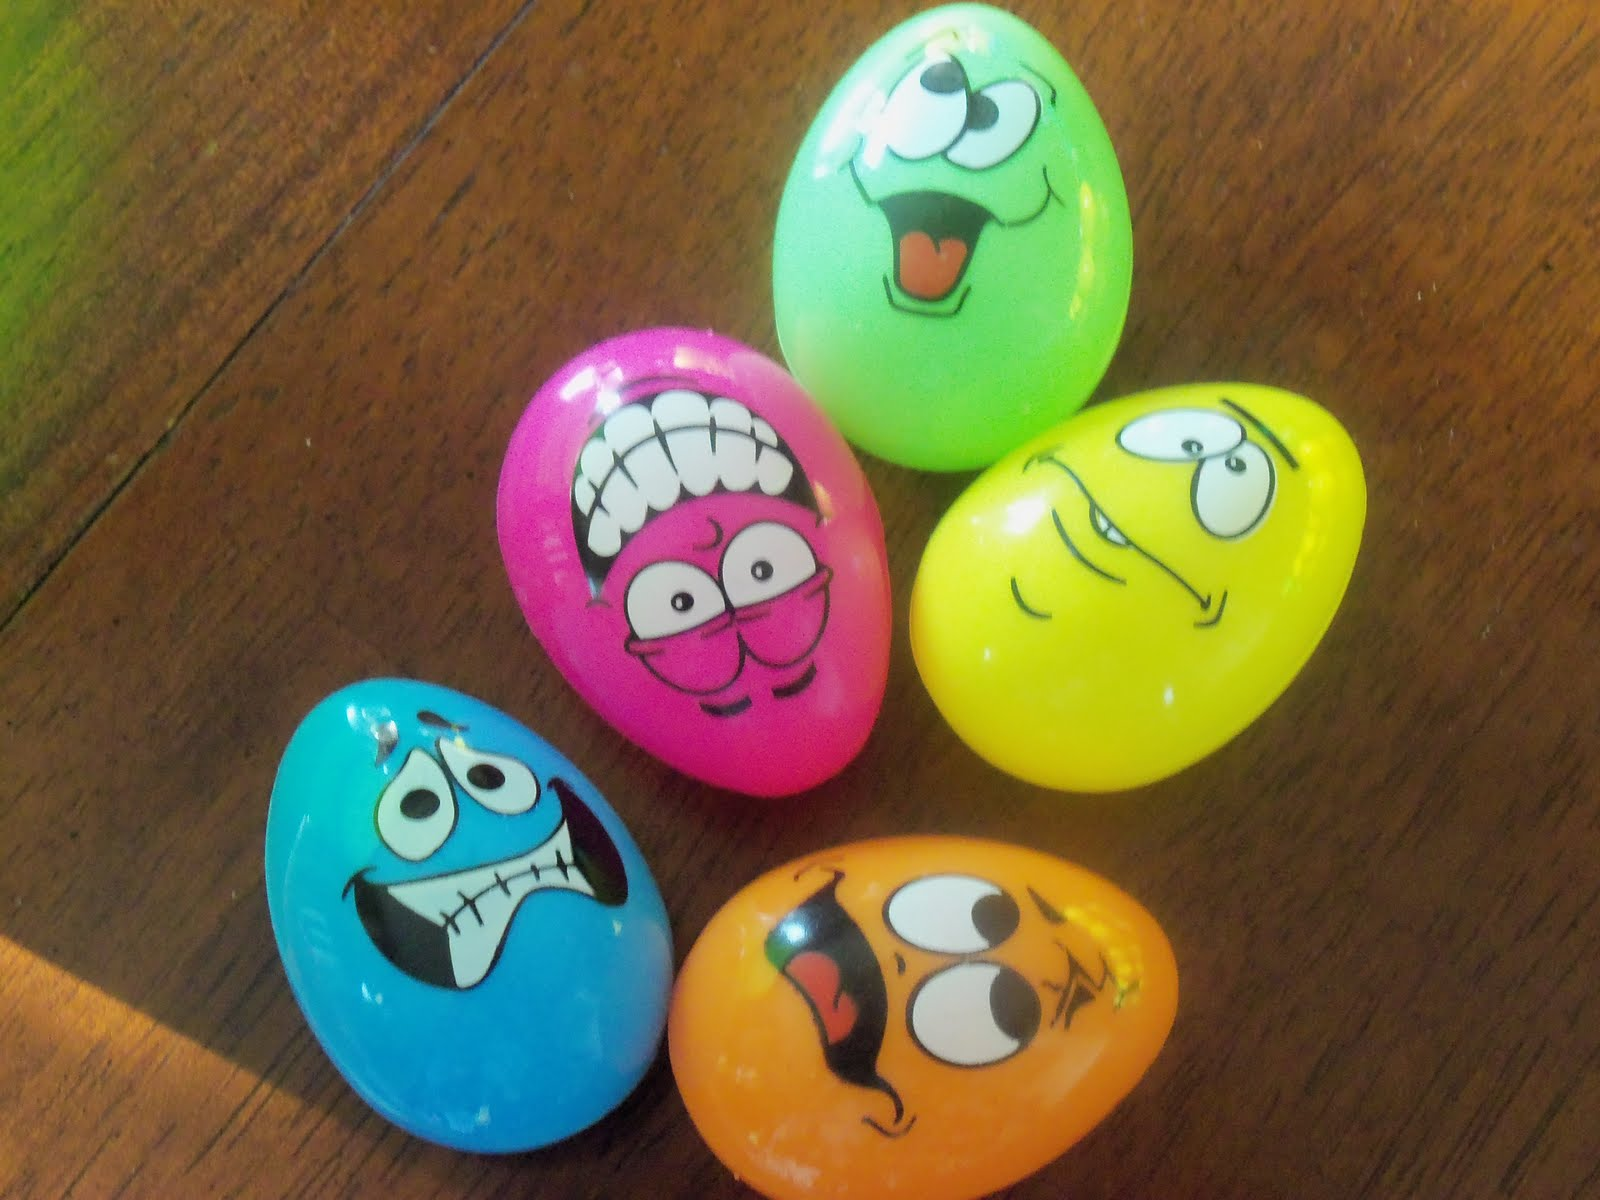 Egg Character Design Ideas : Easter eggs drawing at getdrawings free for personal use